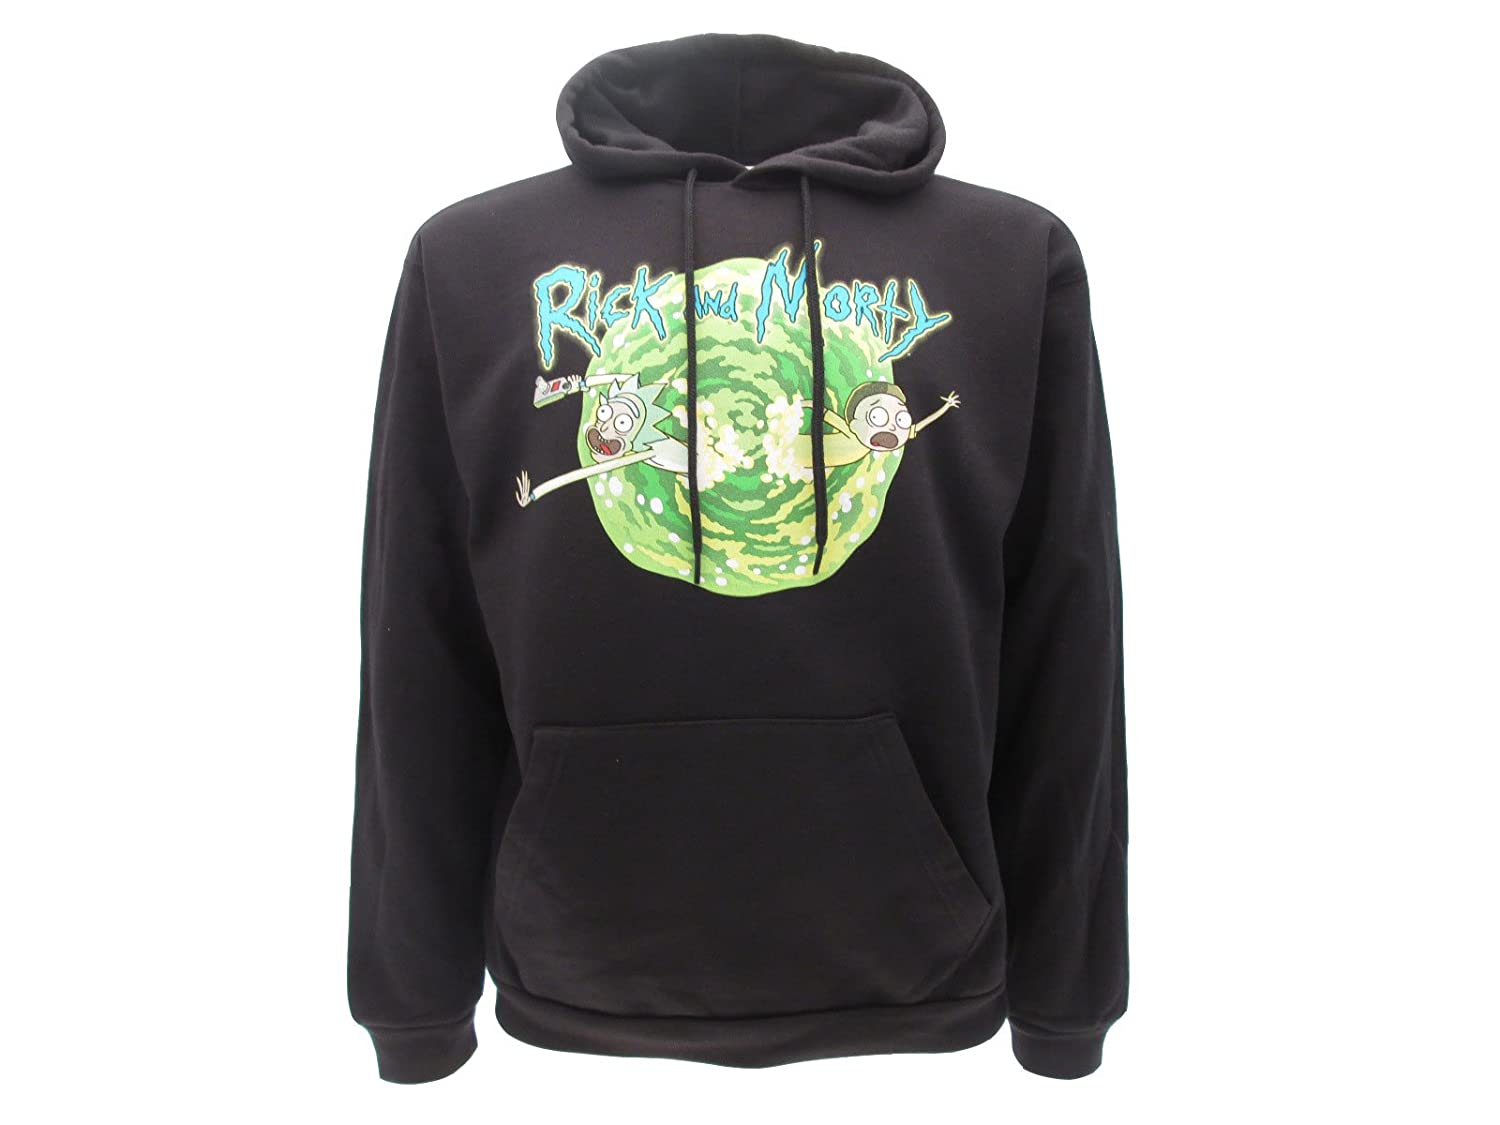 Sweat A Capuche Hoodie Adult Swim 100/% Officiel et Original Rick and Morty Qui Se Noie